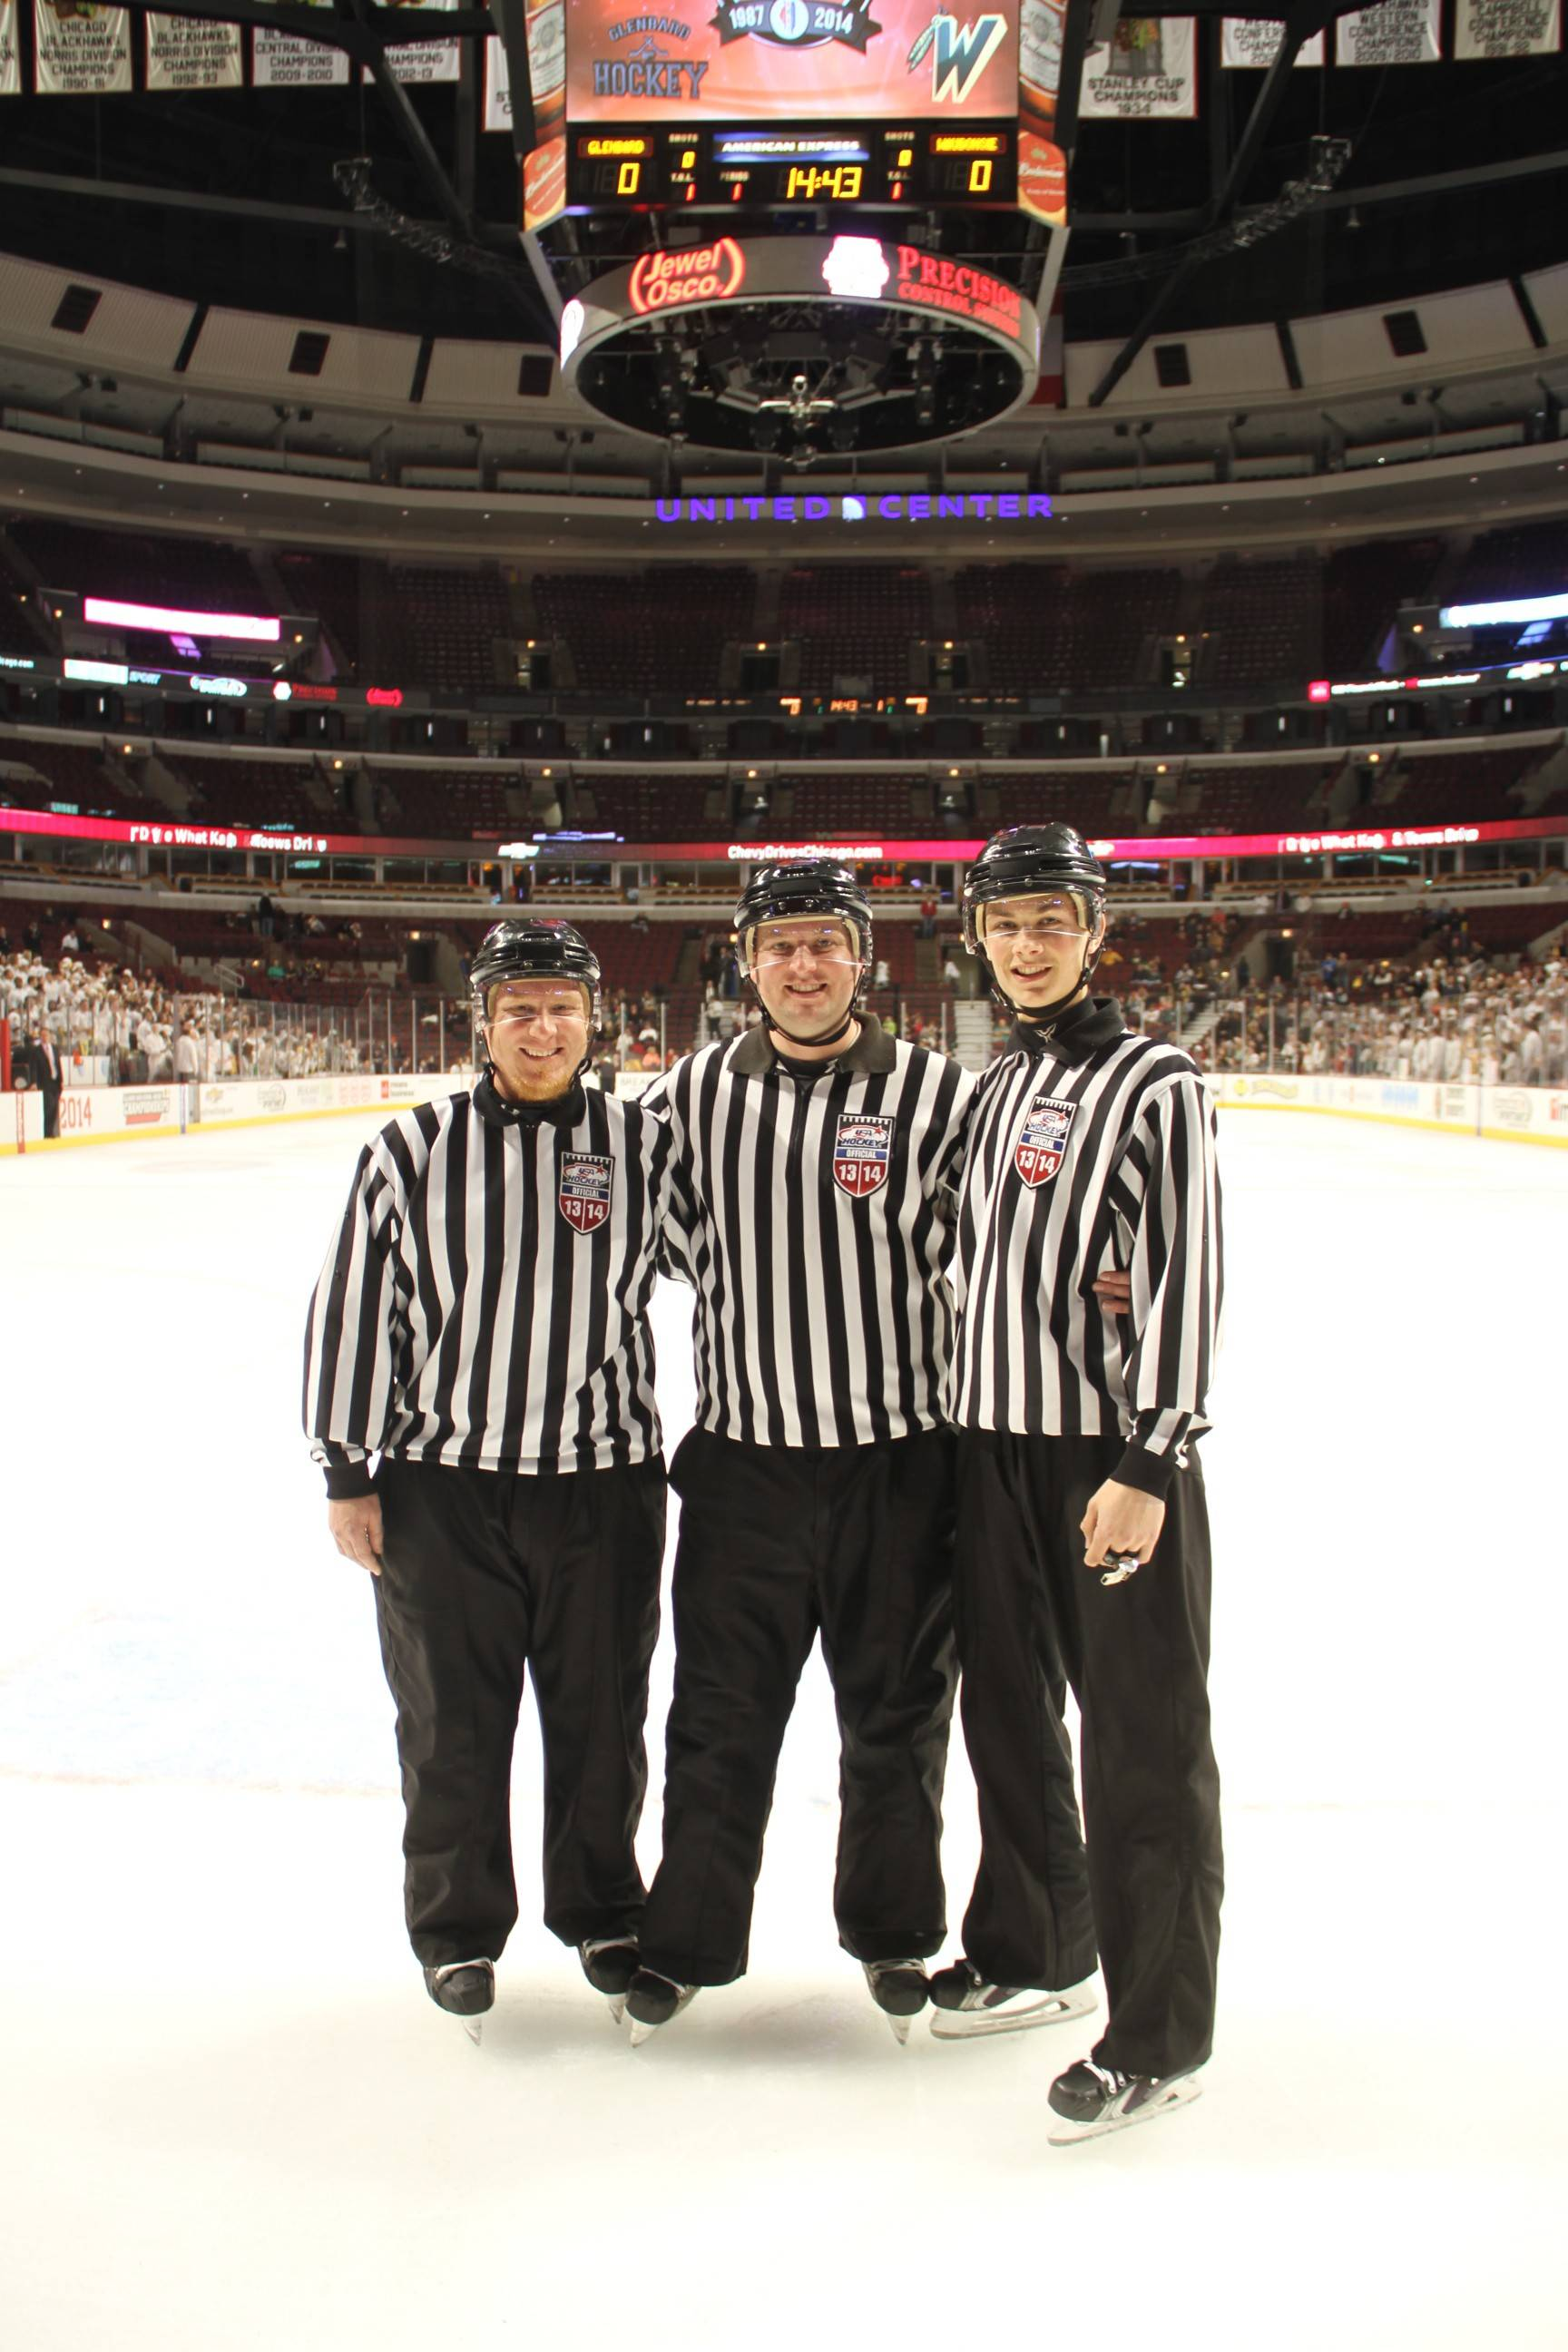 From left, TJ Torba, Brad Baumruck and Shane Gustafson, on the ice at the United Center to work the Combined Division championship game.